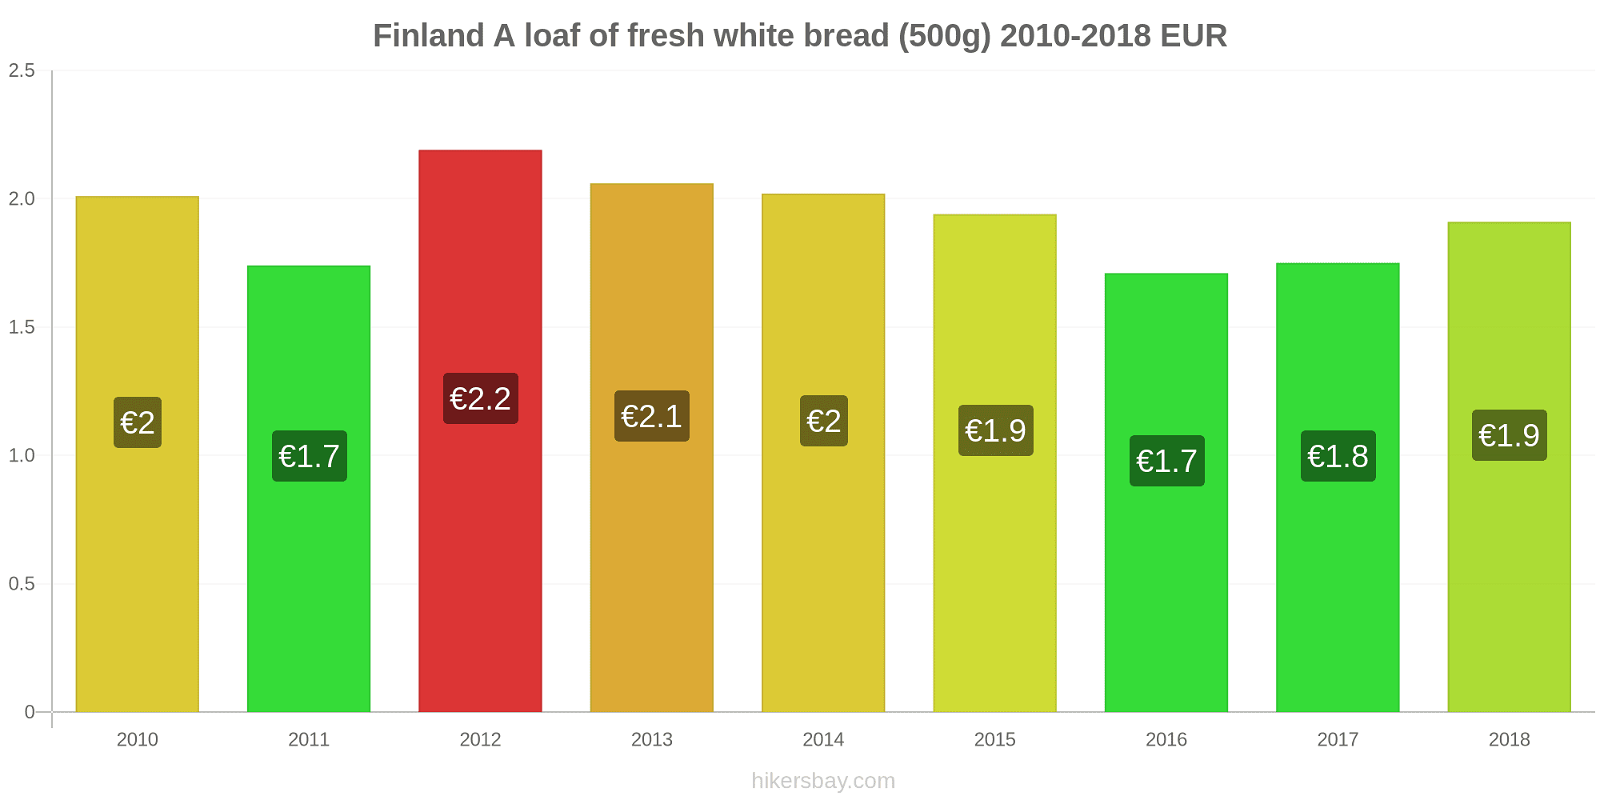 Finland price changes A loaf of fresh white bread (500g) hikersbay.com